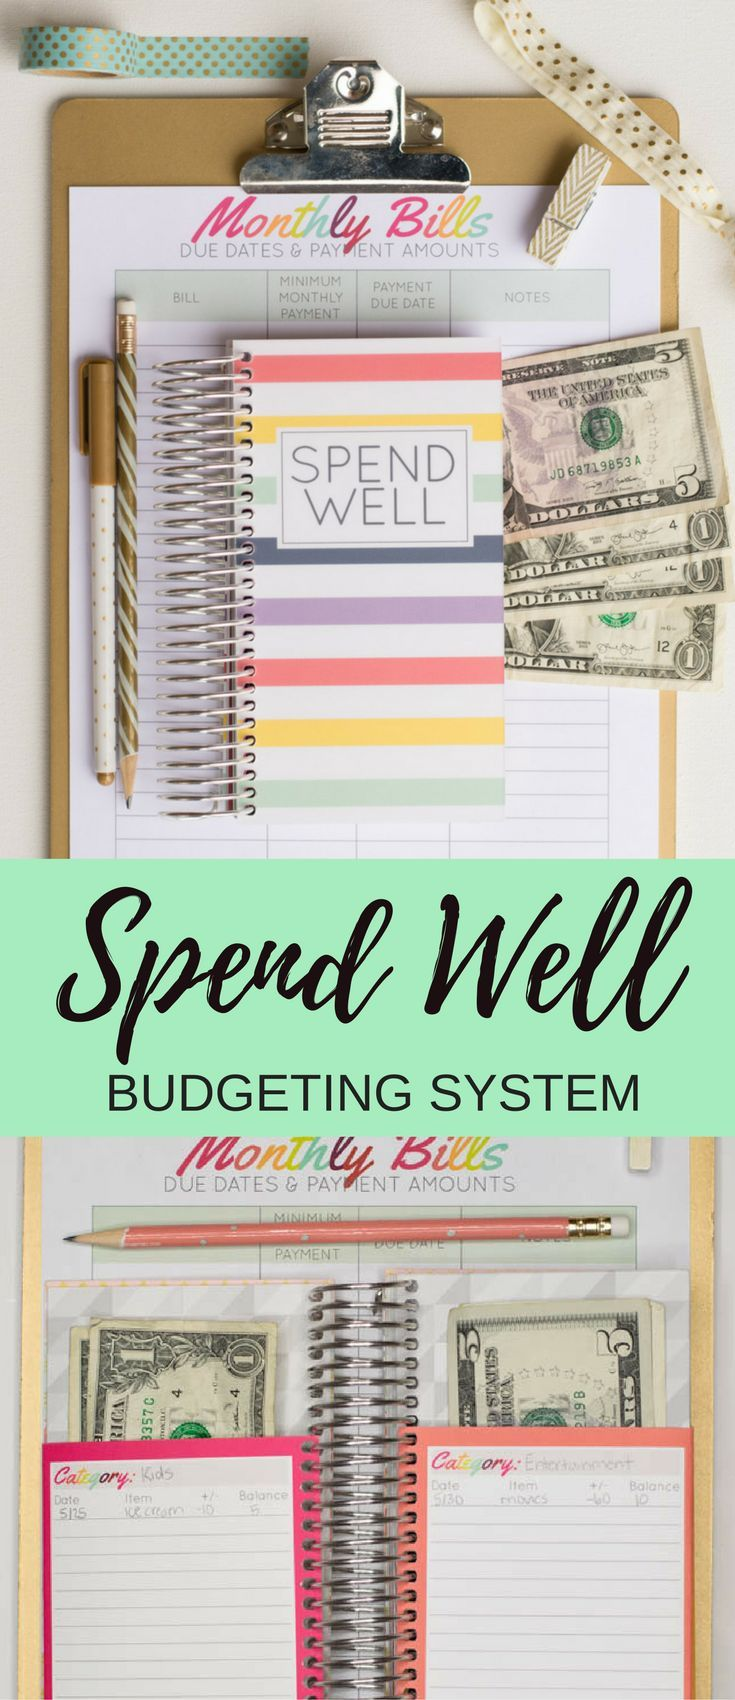 On Etsy $25. Get your finances under control with the Spend Well Budgeting System. This cash envelope system will help you organize your cash and make sticking with your budget easier than ever (and way more fun, too!). #budgeting #daveramsey